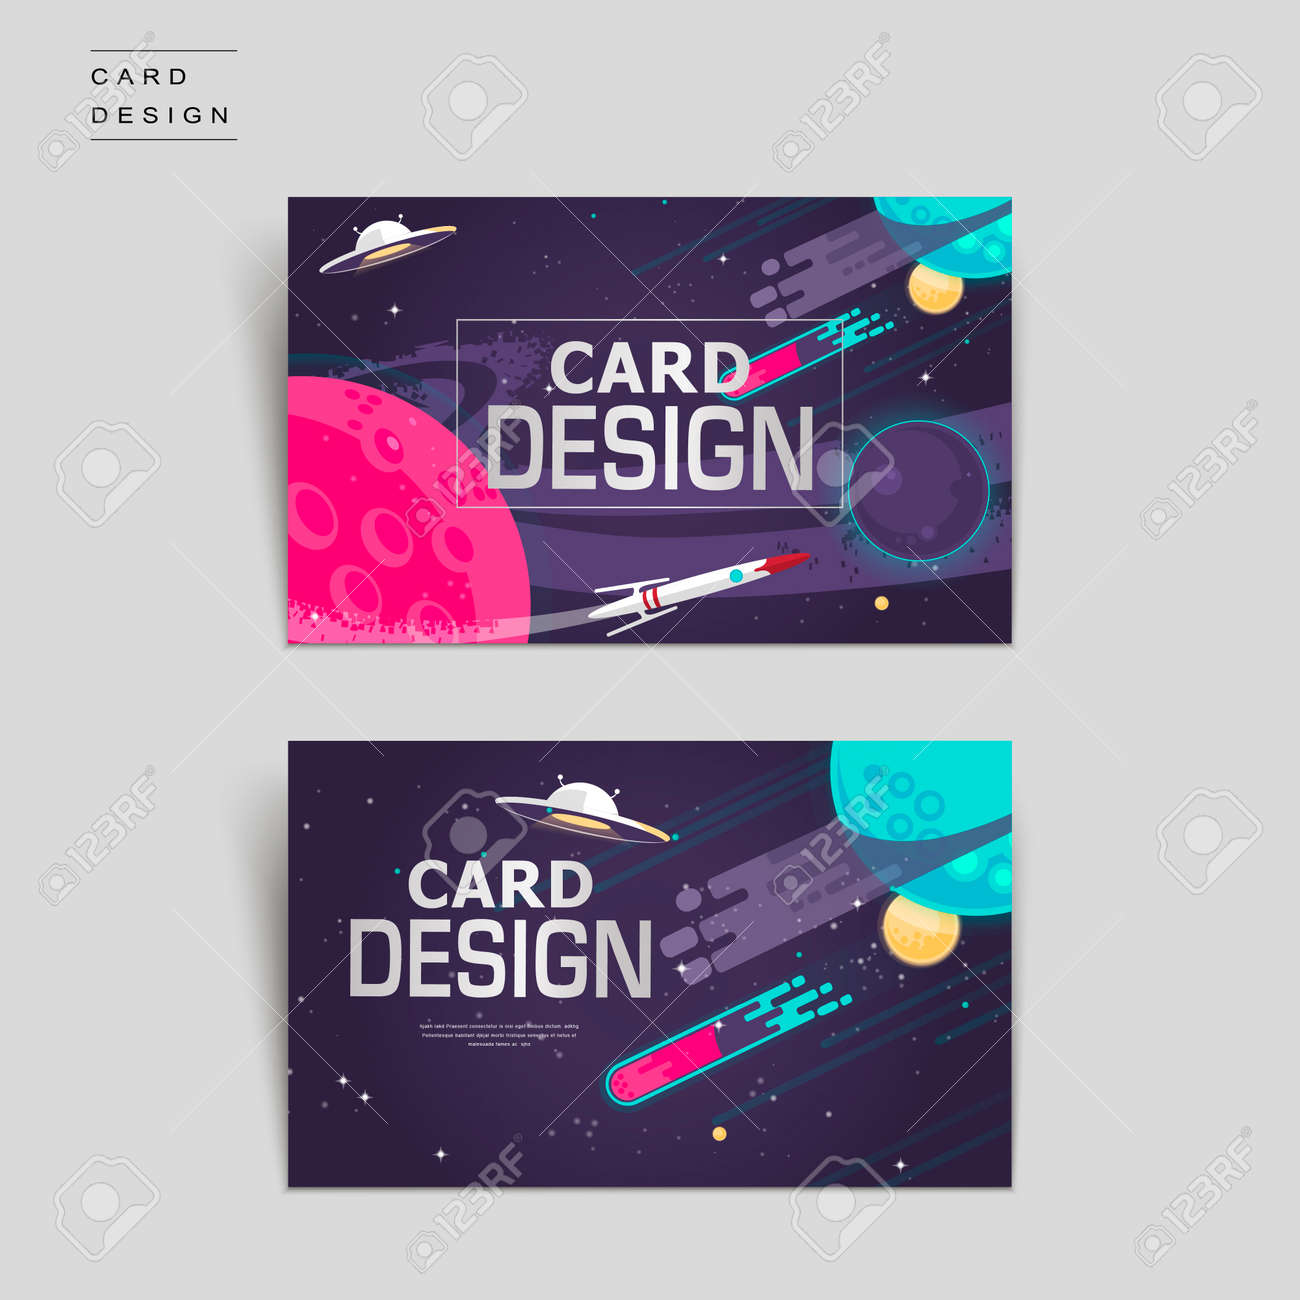 Cartoon Business Card Template Design With Outer Space Scenery ...